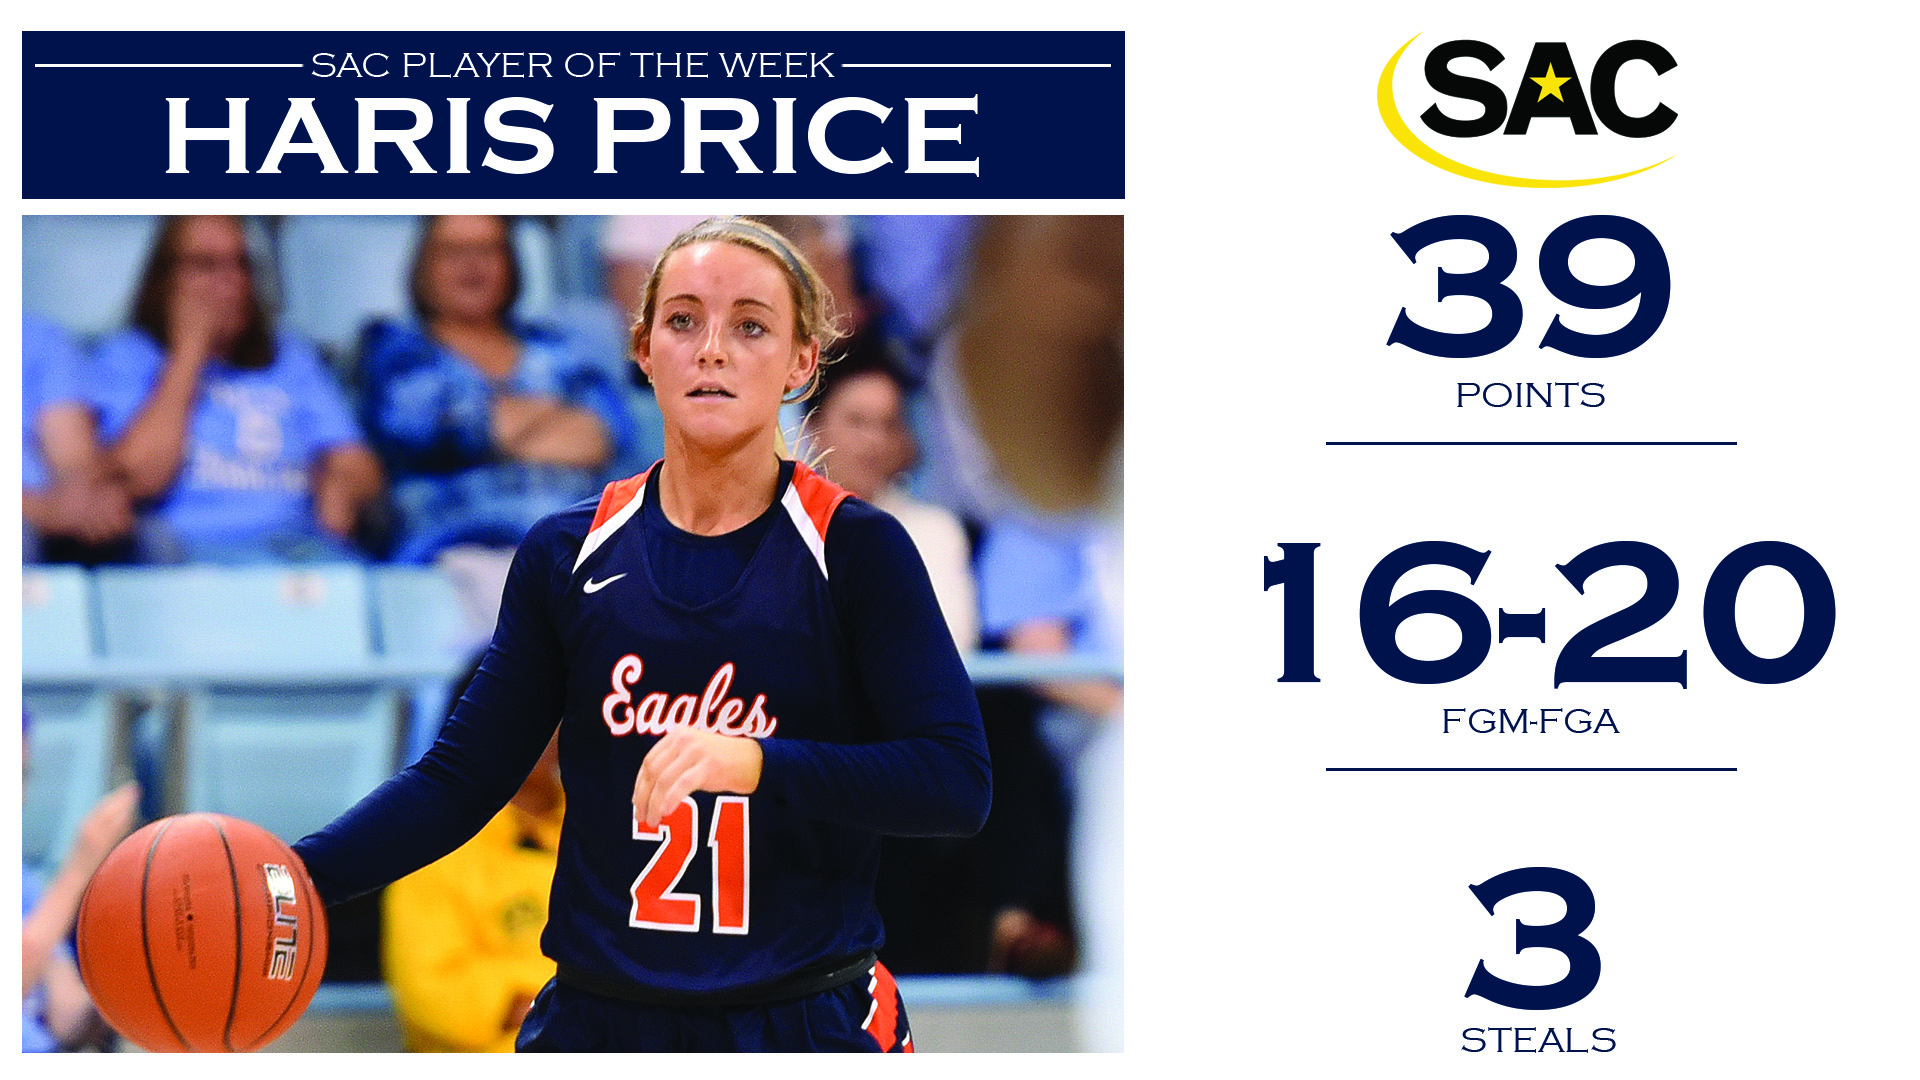 Price secures fourth-career SAC Player of the Week